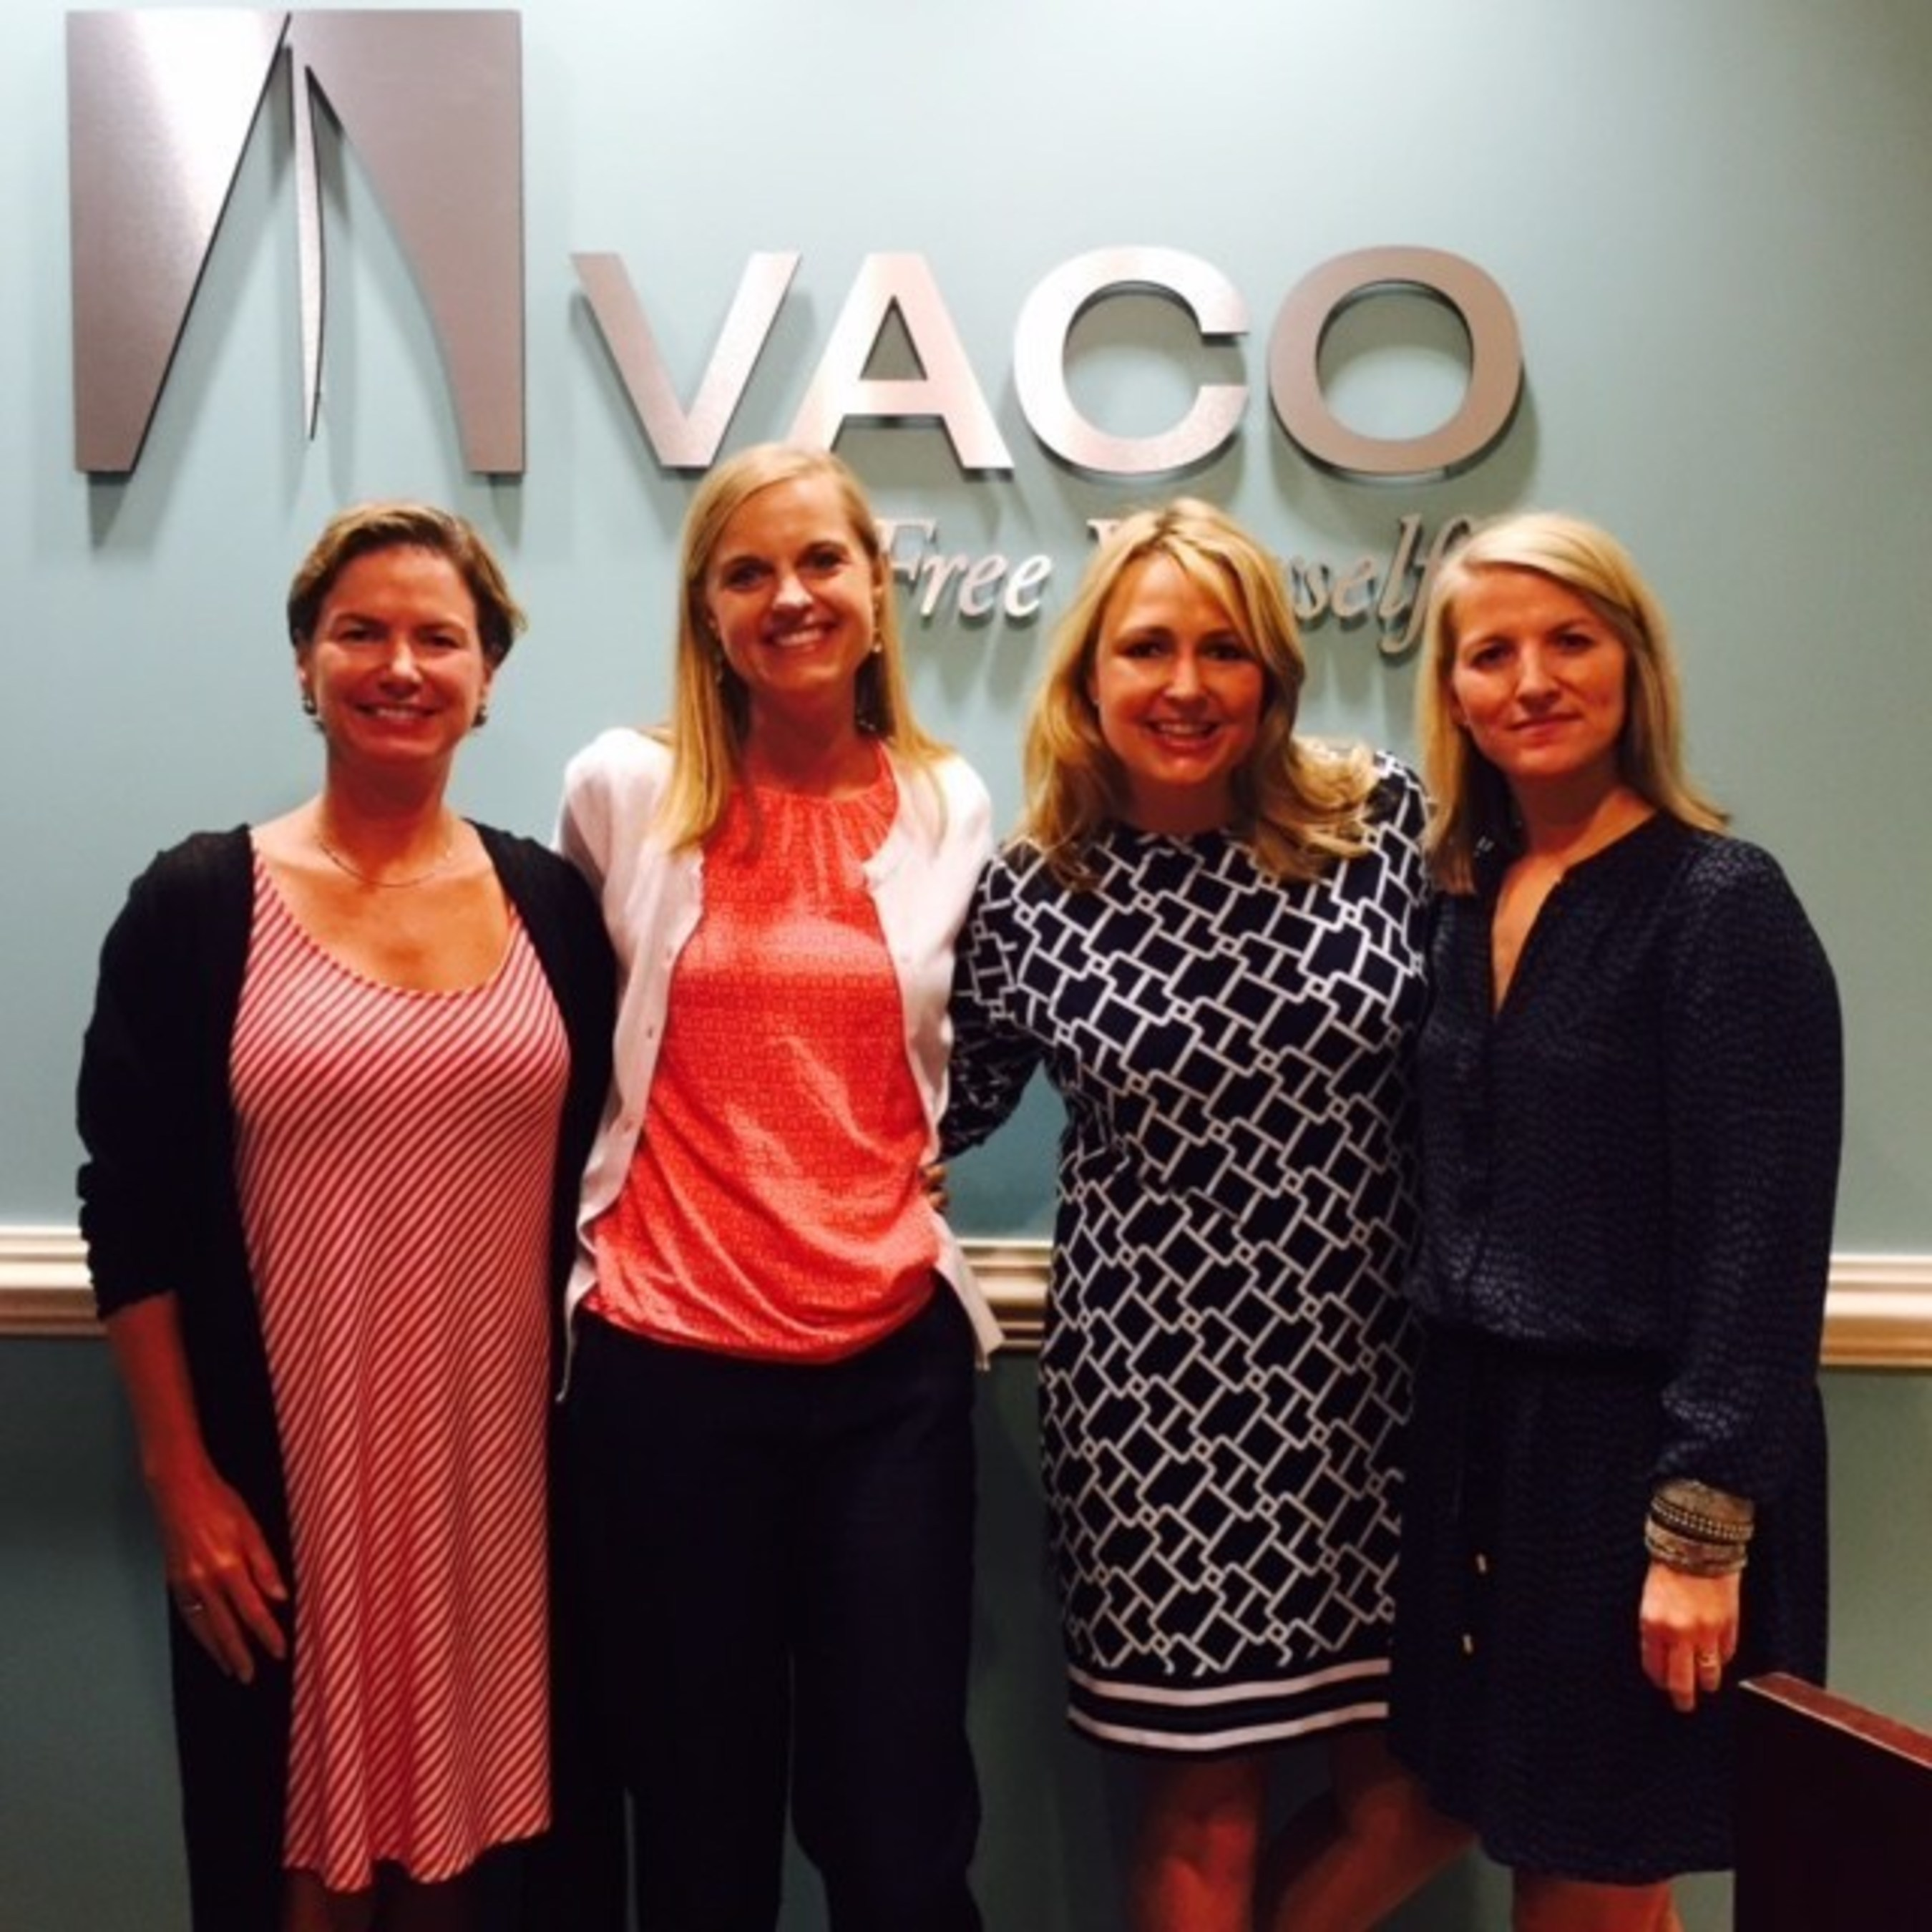 From left to right: Renee Fisher (Vaco), Whitney Forstner (Momentum), Amy Miller (Vaco) and Tanya Cummings (Momentum)